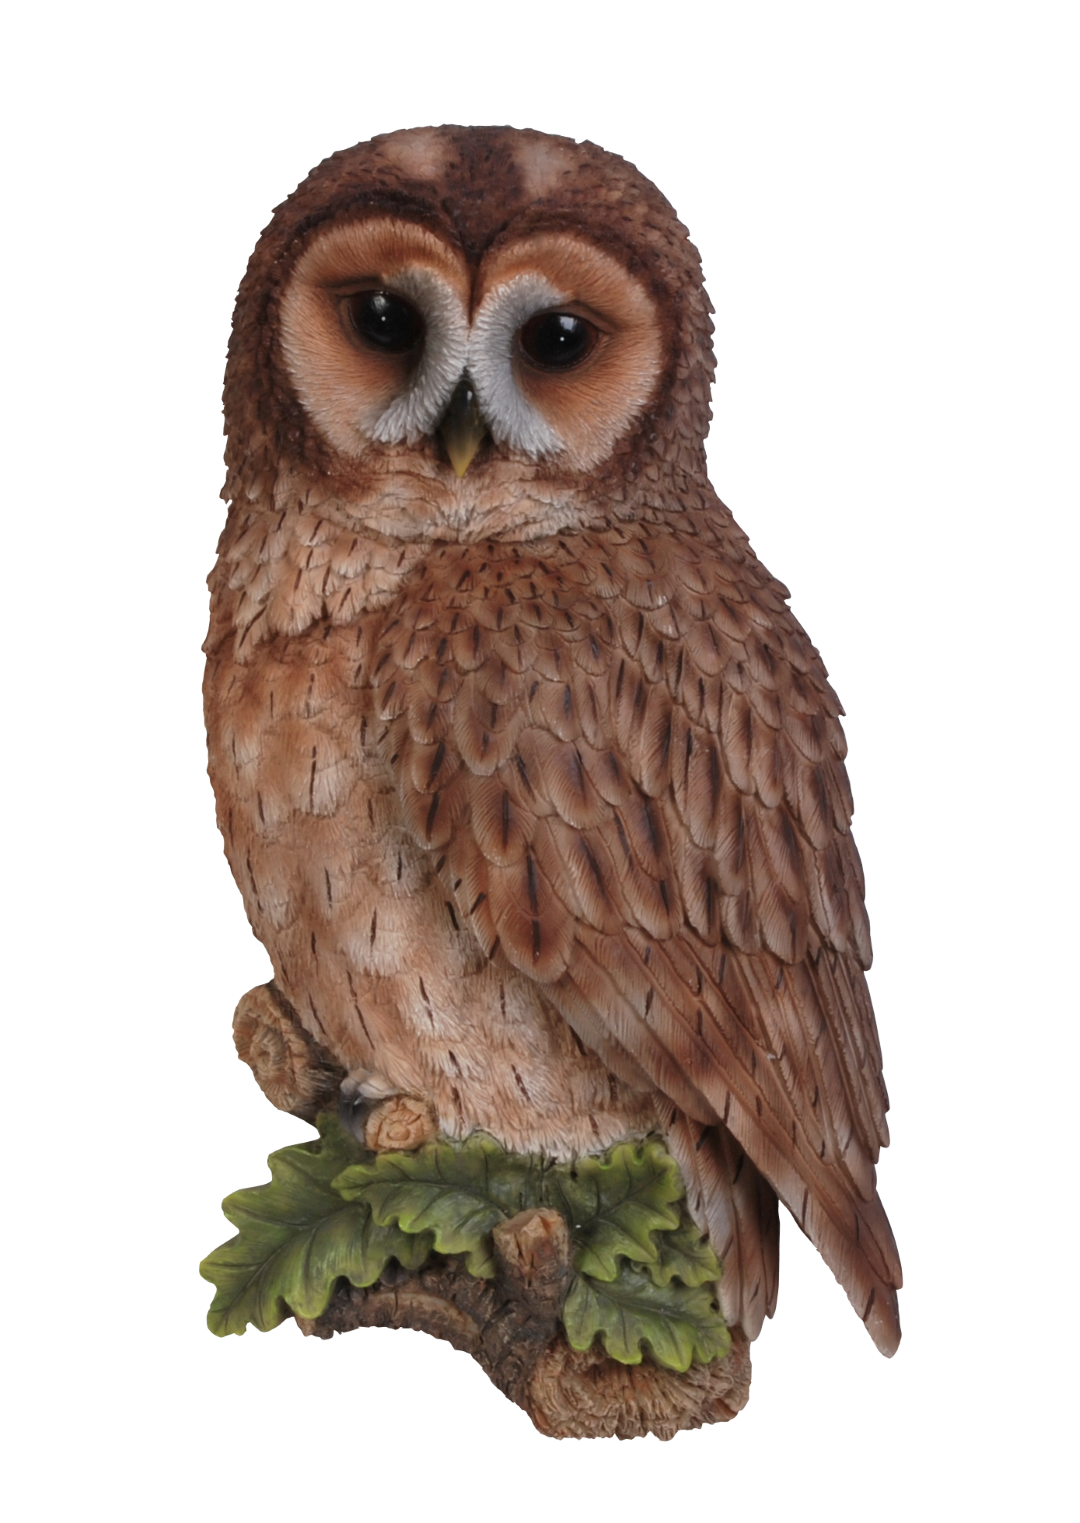 tawny owl png tawny owl wall plaque by vivid arts wall ornaments pictures tiles tapestries home gift mill race garden centre 1080png httppluspngcompng ten commandments tablets 3300html daily 10